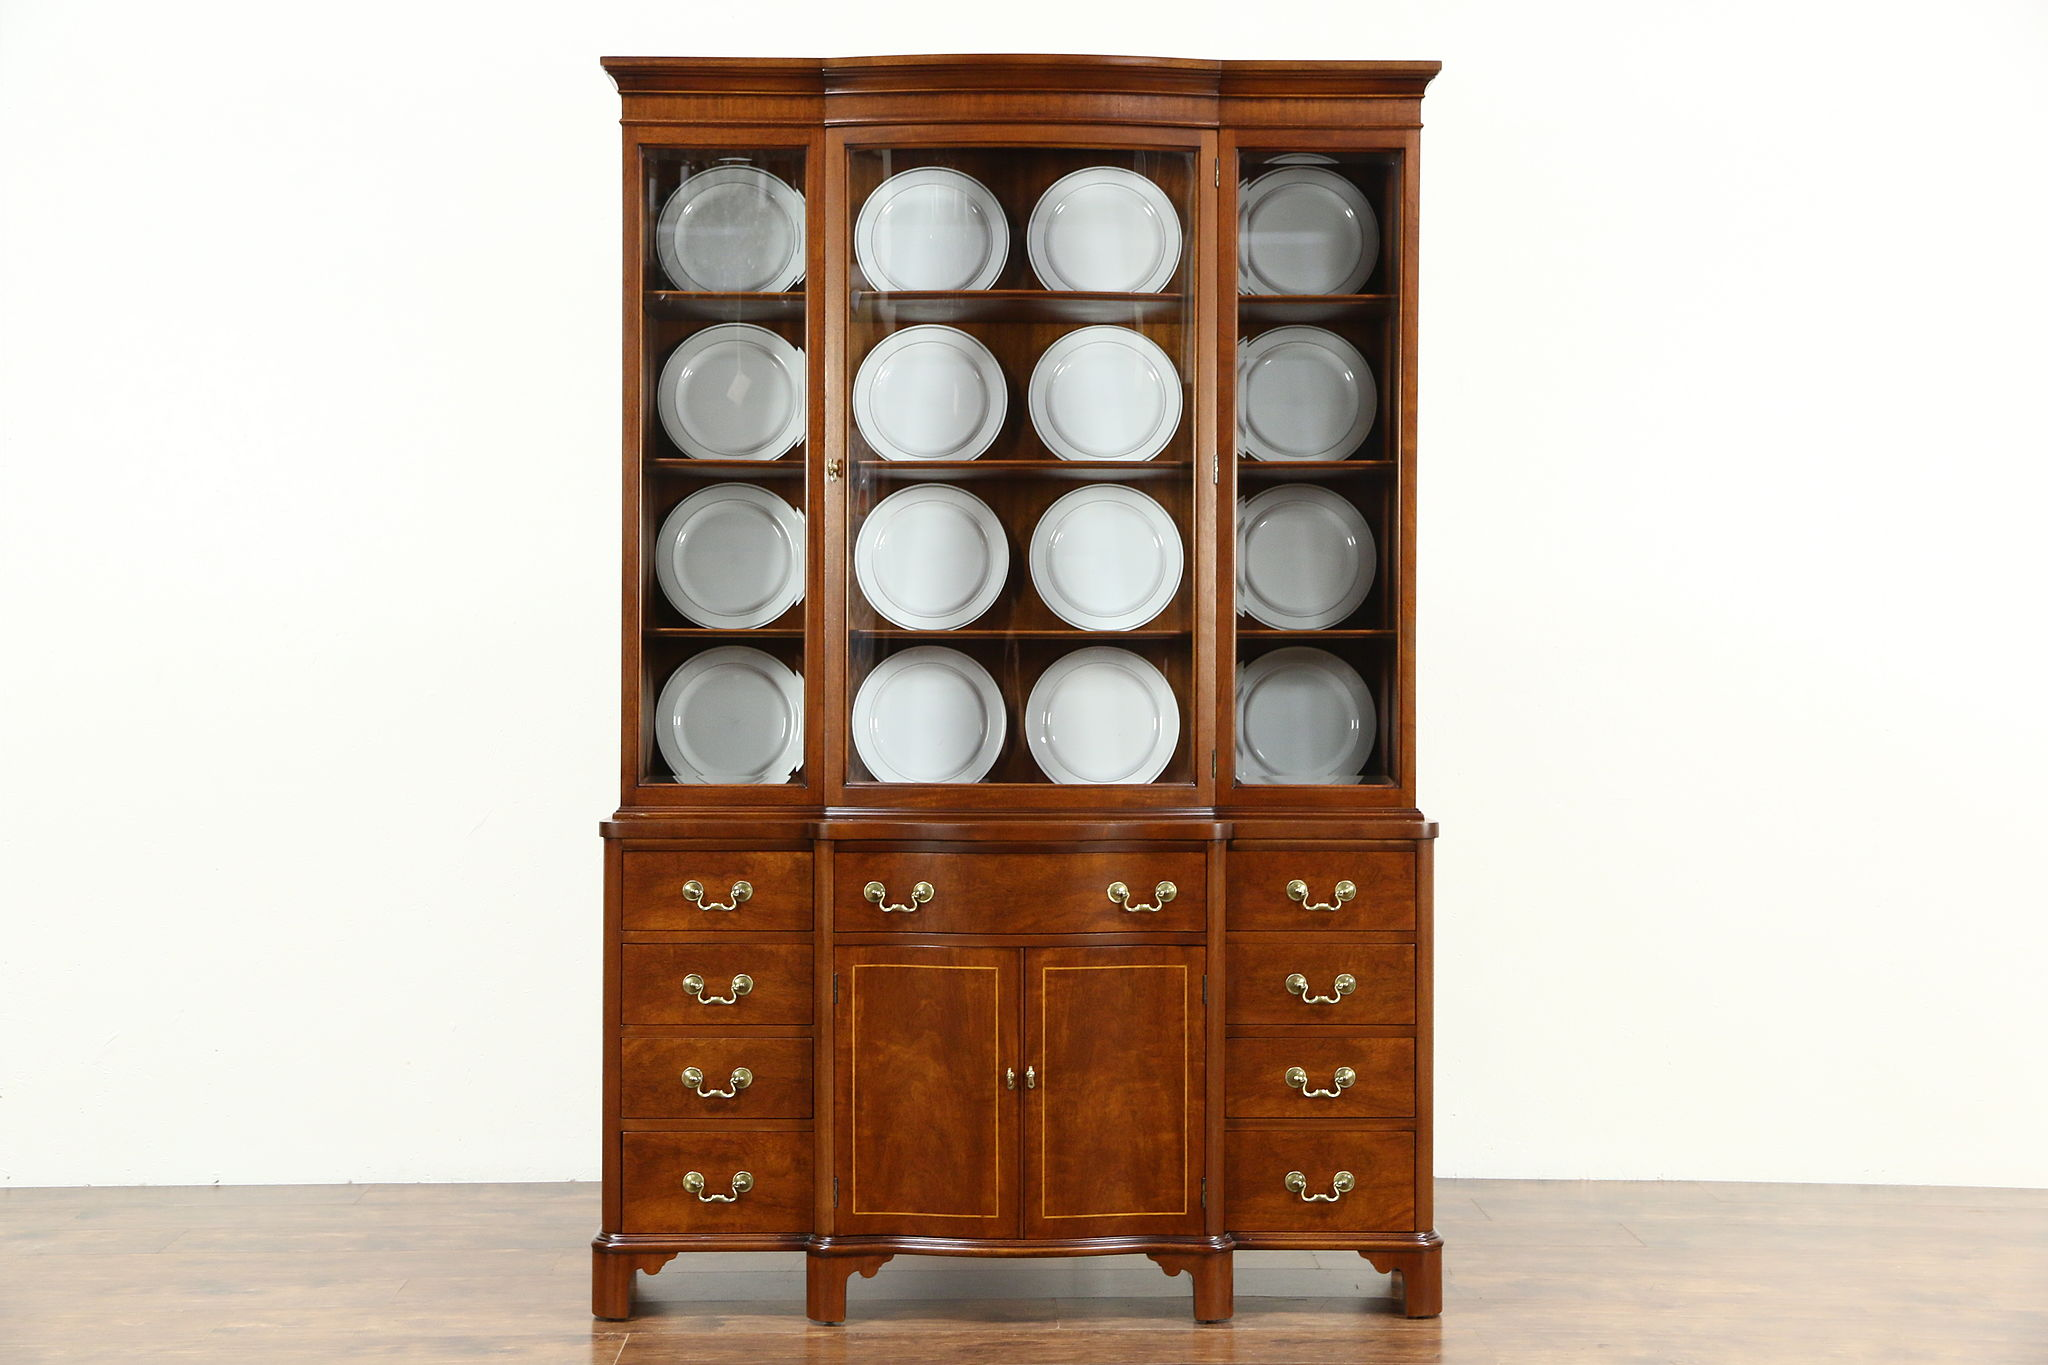 Search showroom harp gallery antiques showroom traditional vintage breakfront china display cabinet bookcase signed landstrom vtopaller Gallery